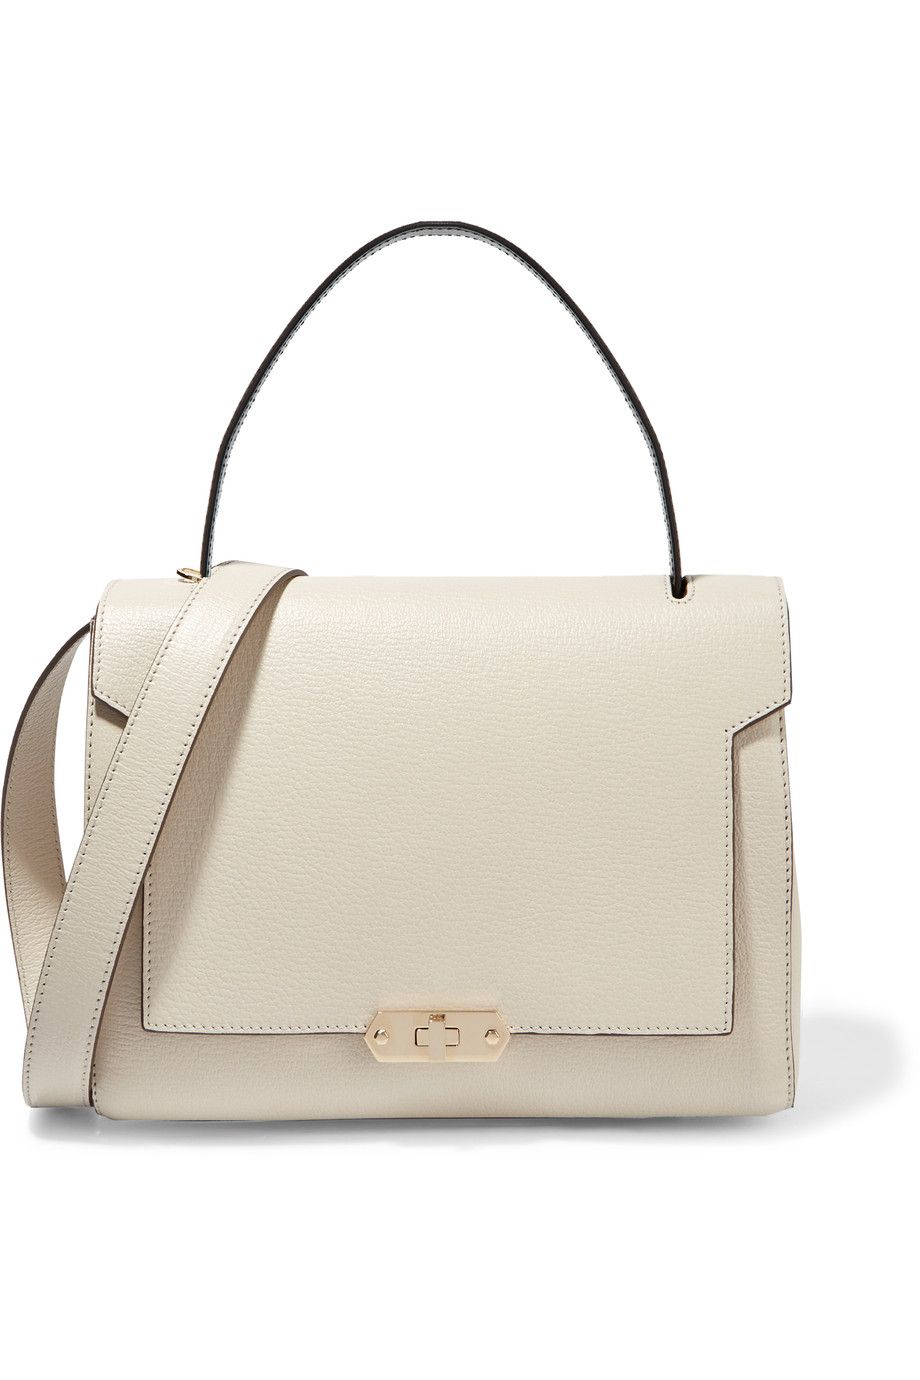 On Anya Hindmarch Bathurst Leather Shoulder Bag Browse Other Designer Bags More The Most Fashionable Fashion Outlet